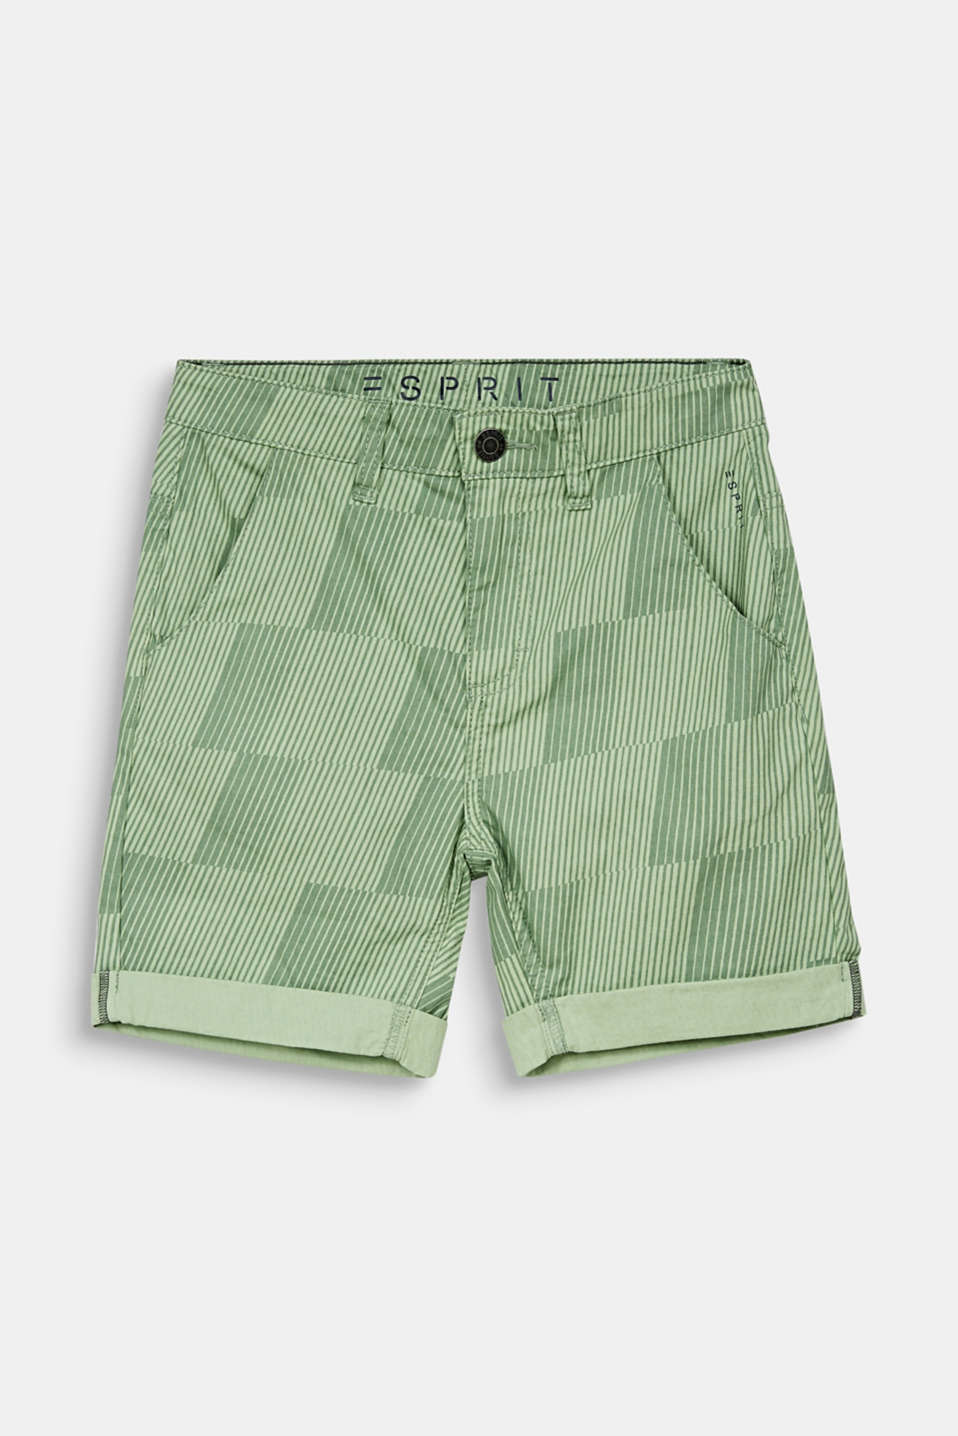 Esprit - Shorts with a geometric print, 100% cotton